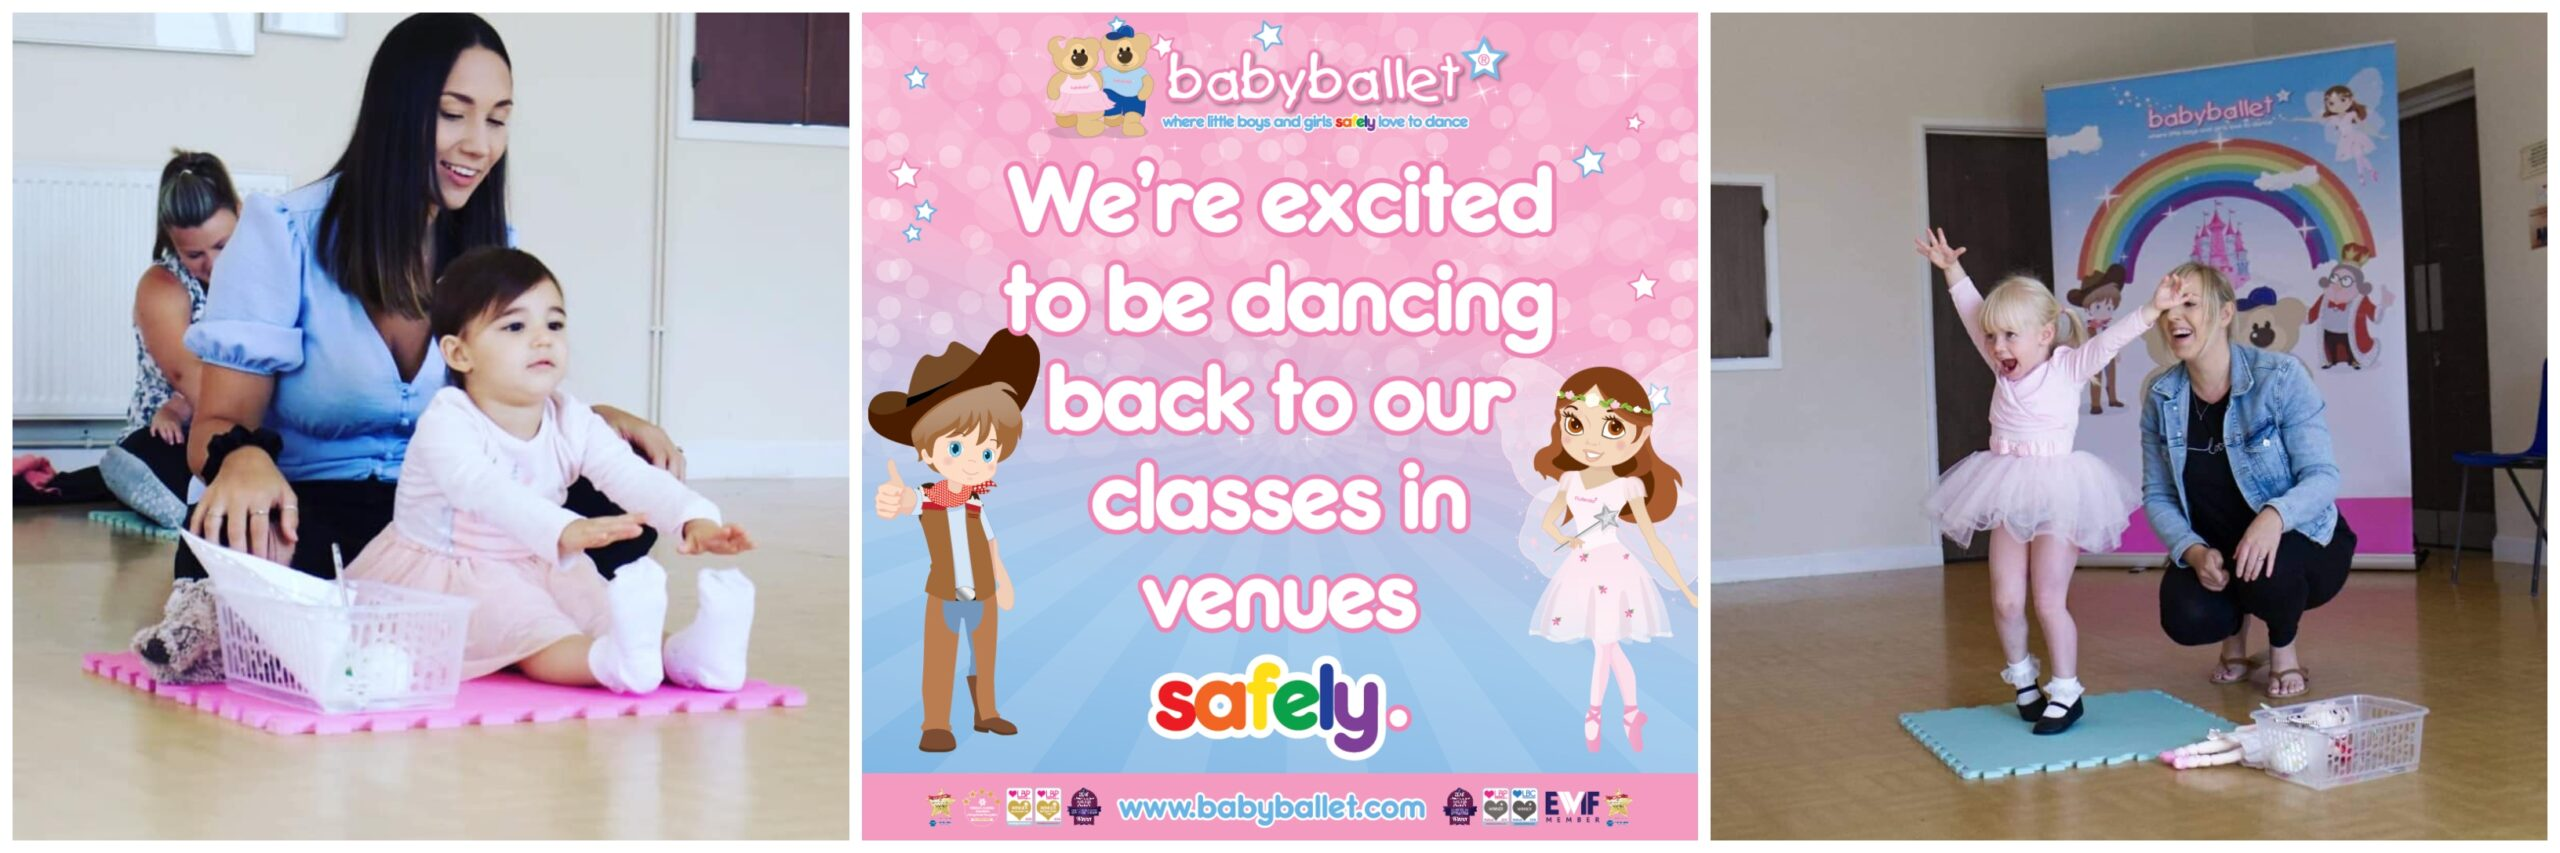 babyballet classes are back with Coronavirus safety measures in place